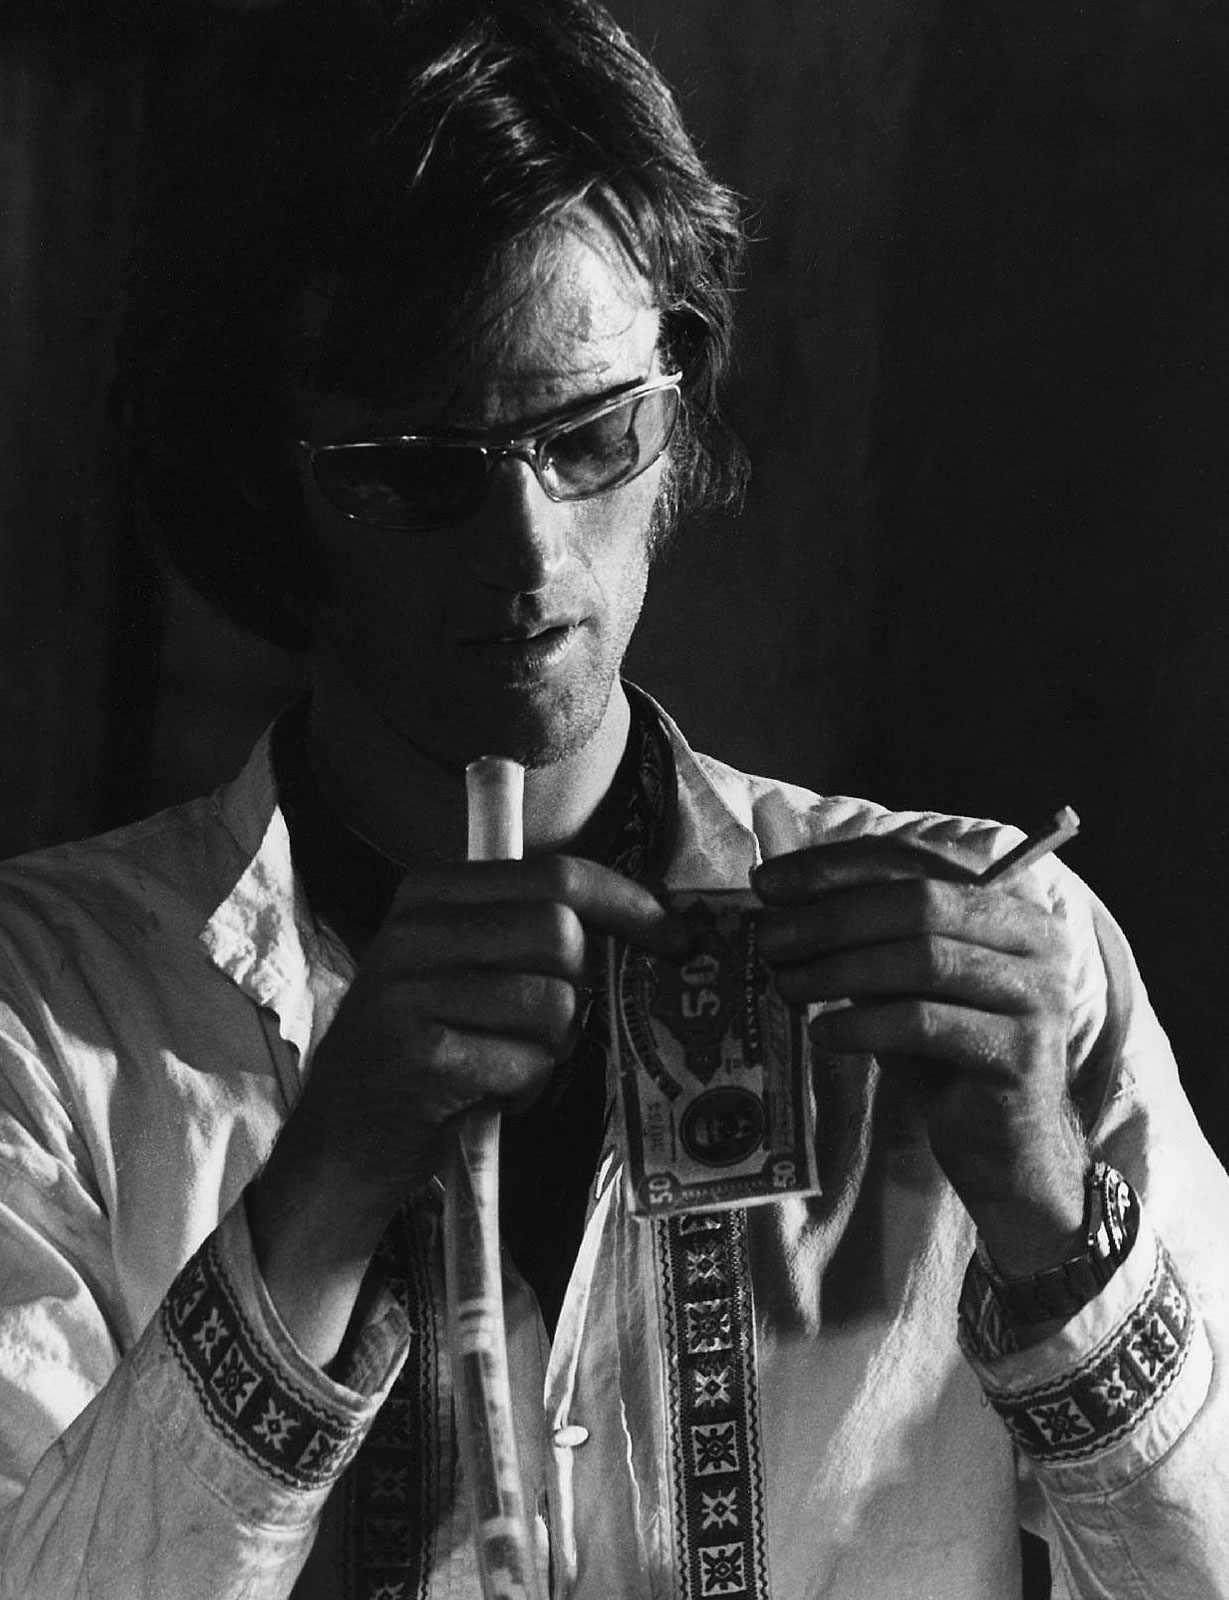 Peter Fonda For mobile